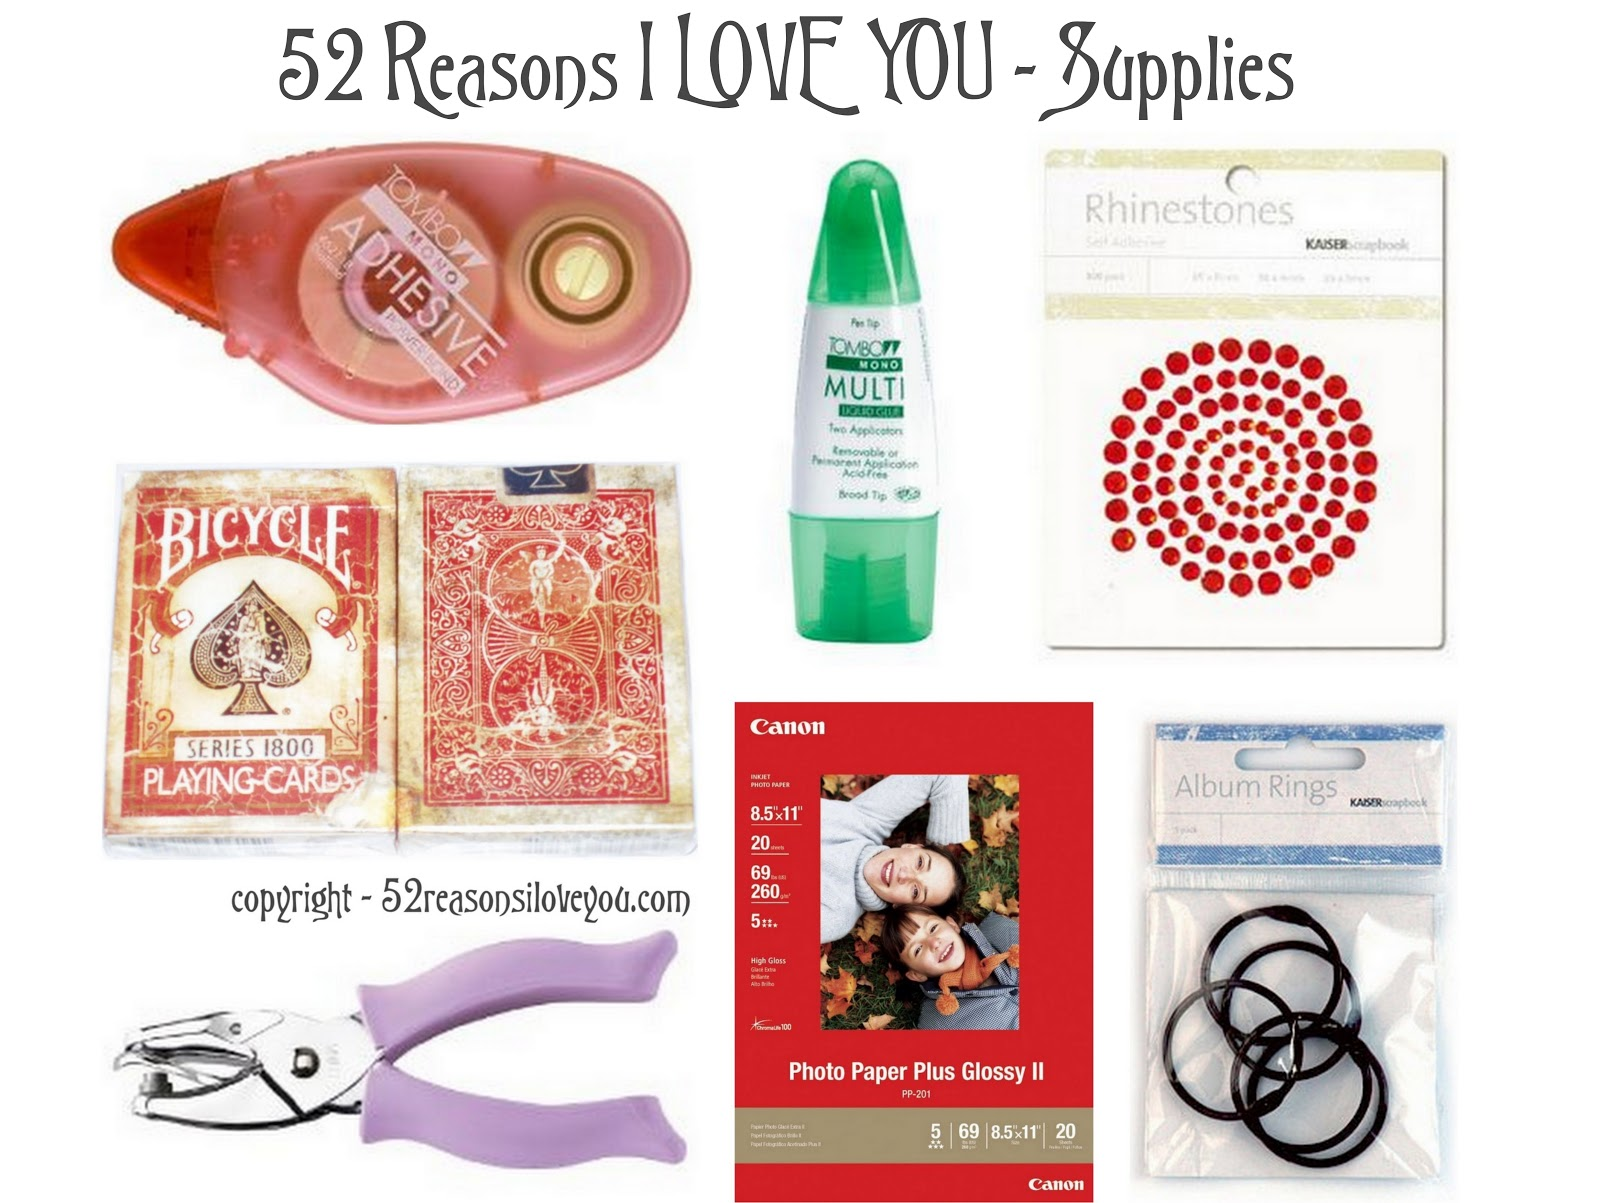 52 reasons why i love you template powerpoint - 52 reasons why i love you template playbestonlinegames